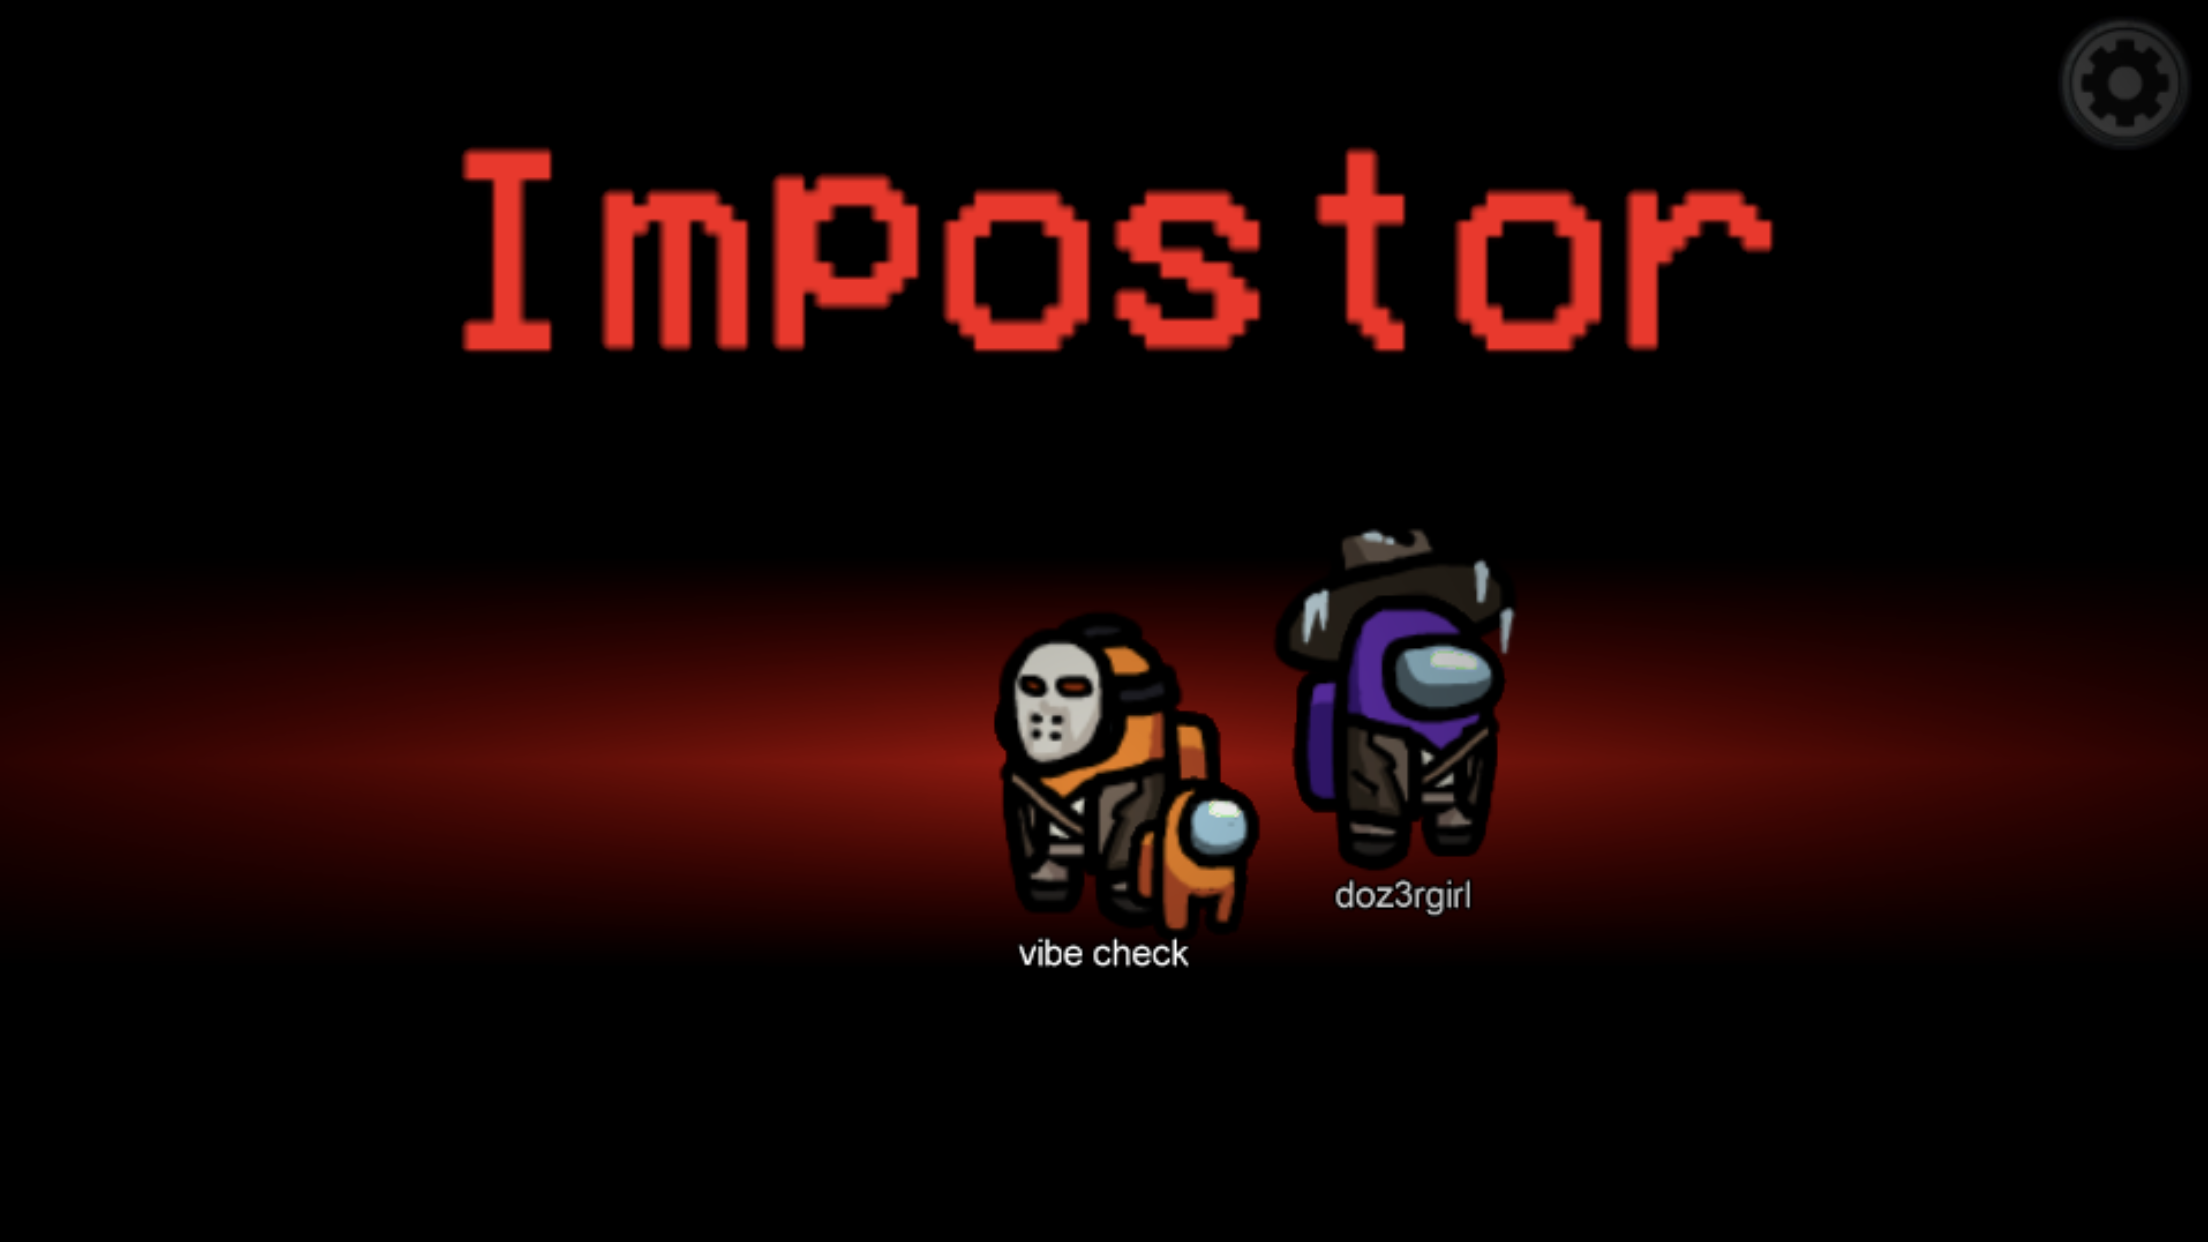 The impostors in a game of Among Us, revealed for the traitors they are.